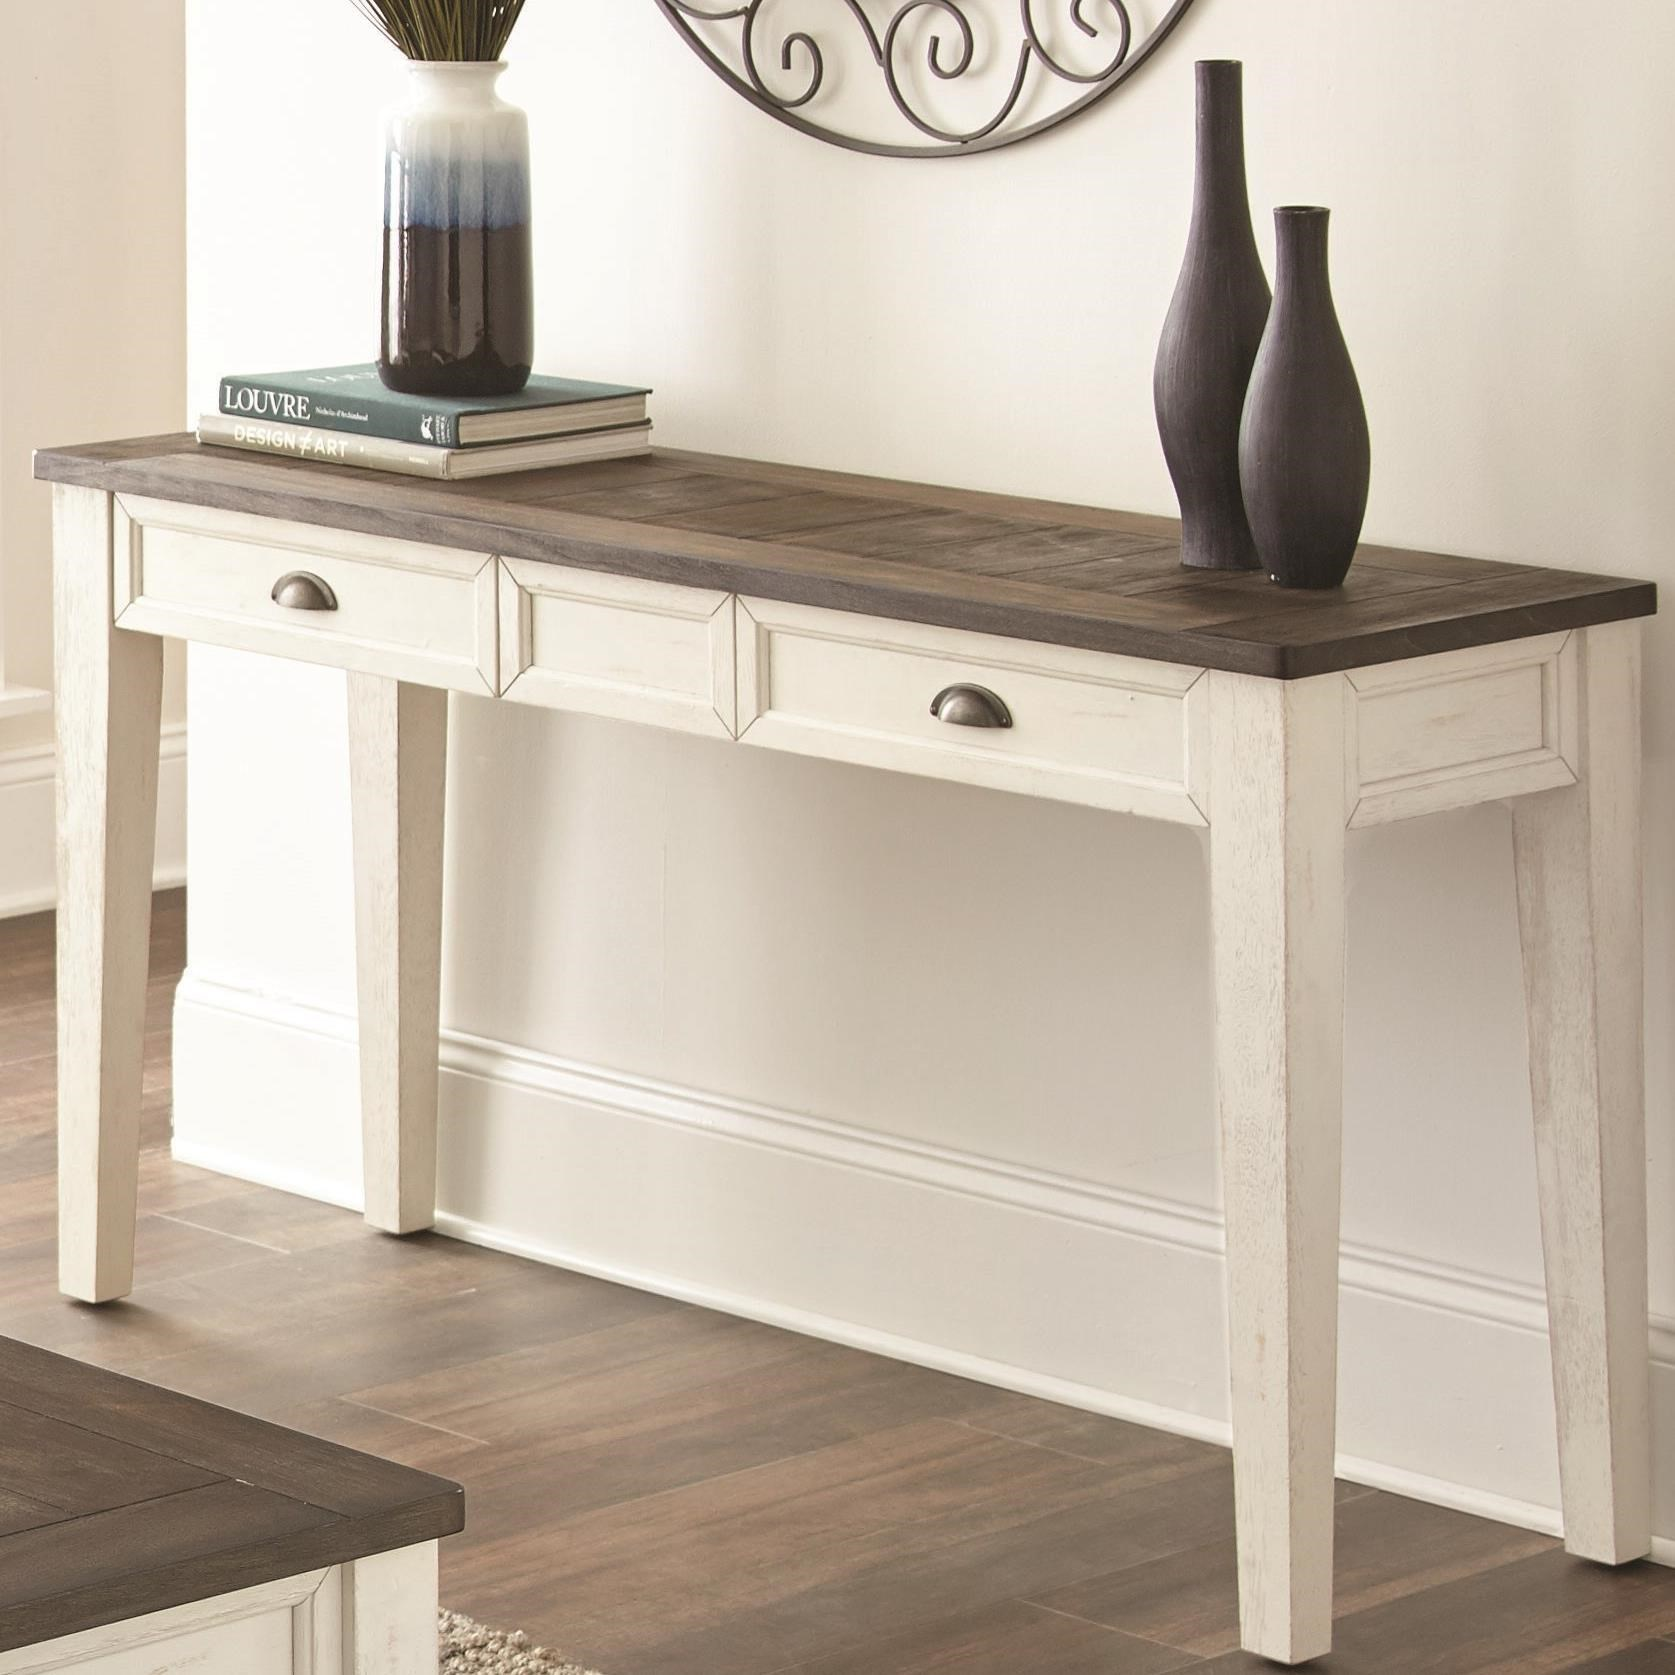 Cayla Sofa Table by Steve Silver at Walker's Furniture